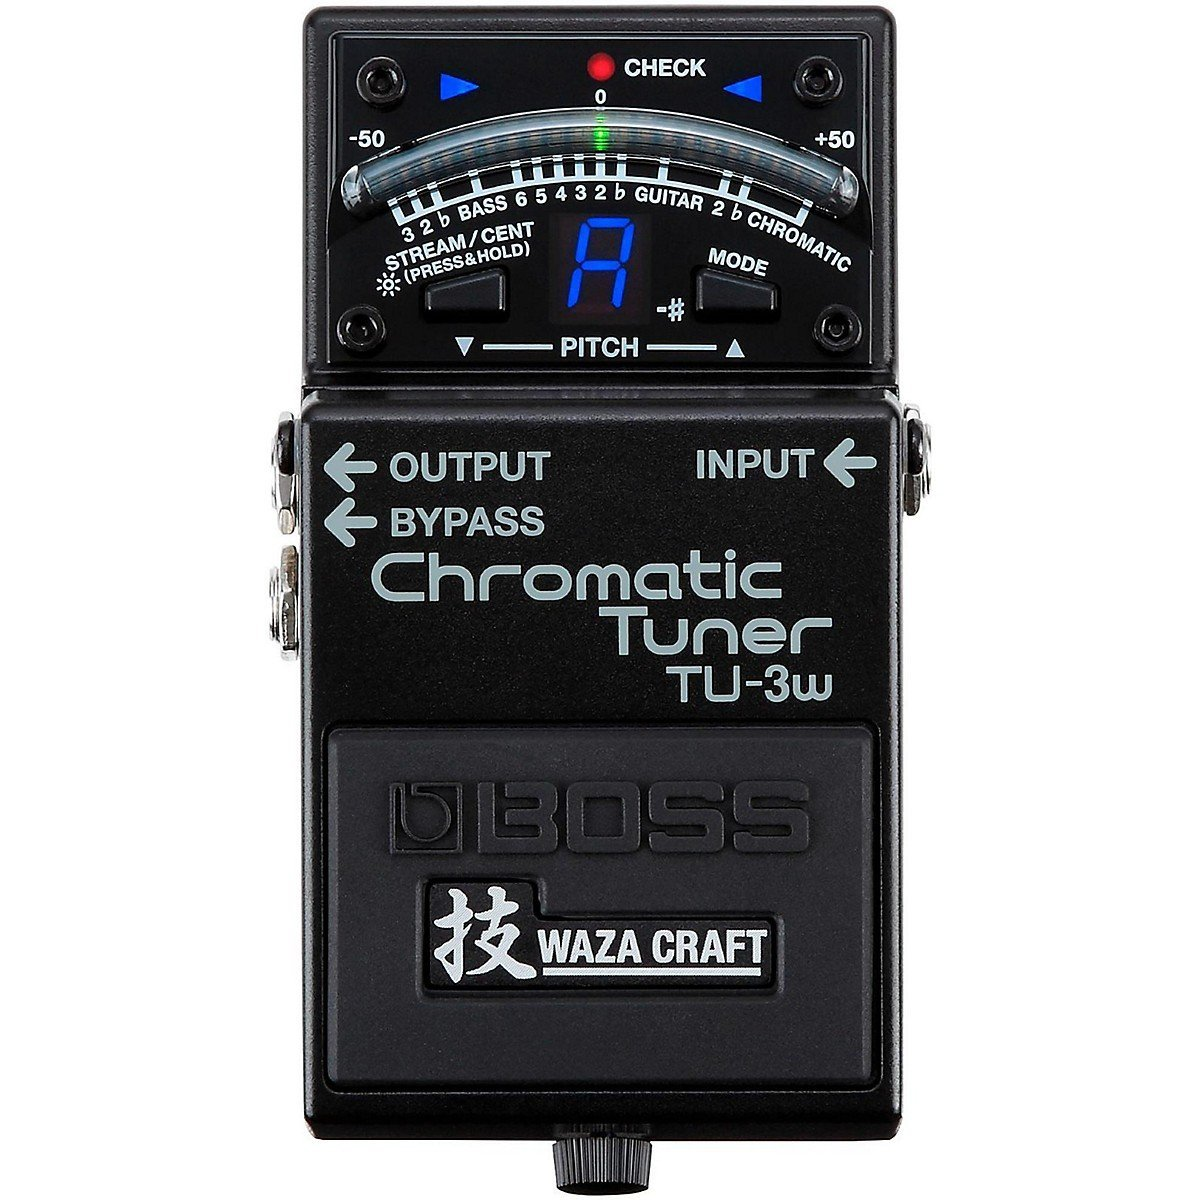 Boss TU-3W Waza Craft Chromatic Tuner with Bypass Guitar and Bass Tuner Pedal гитарный тюнер boss tu 3w